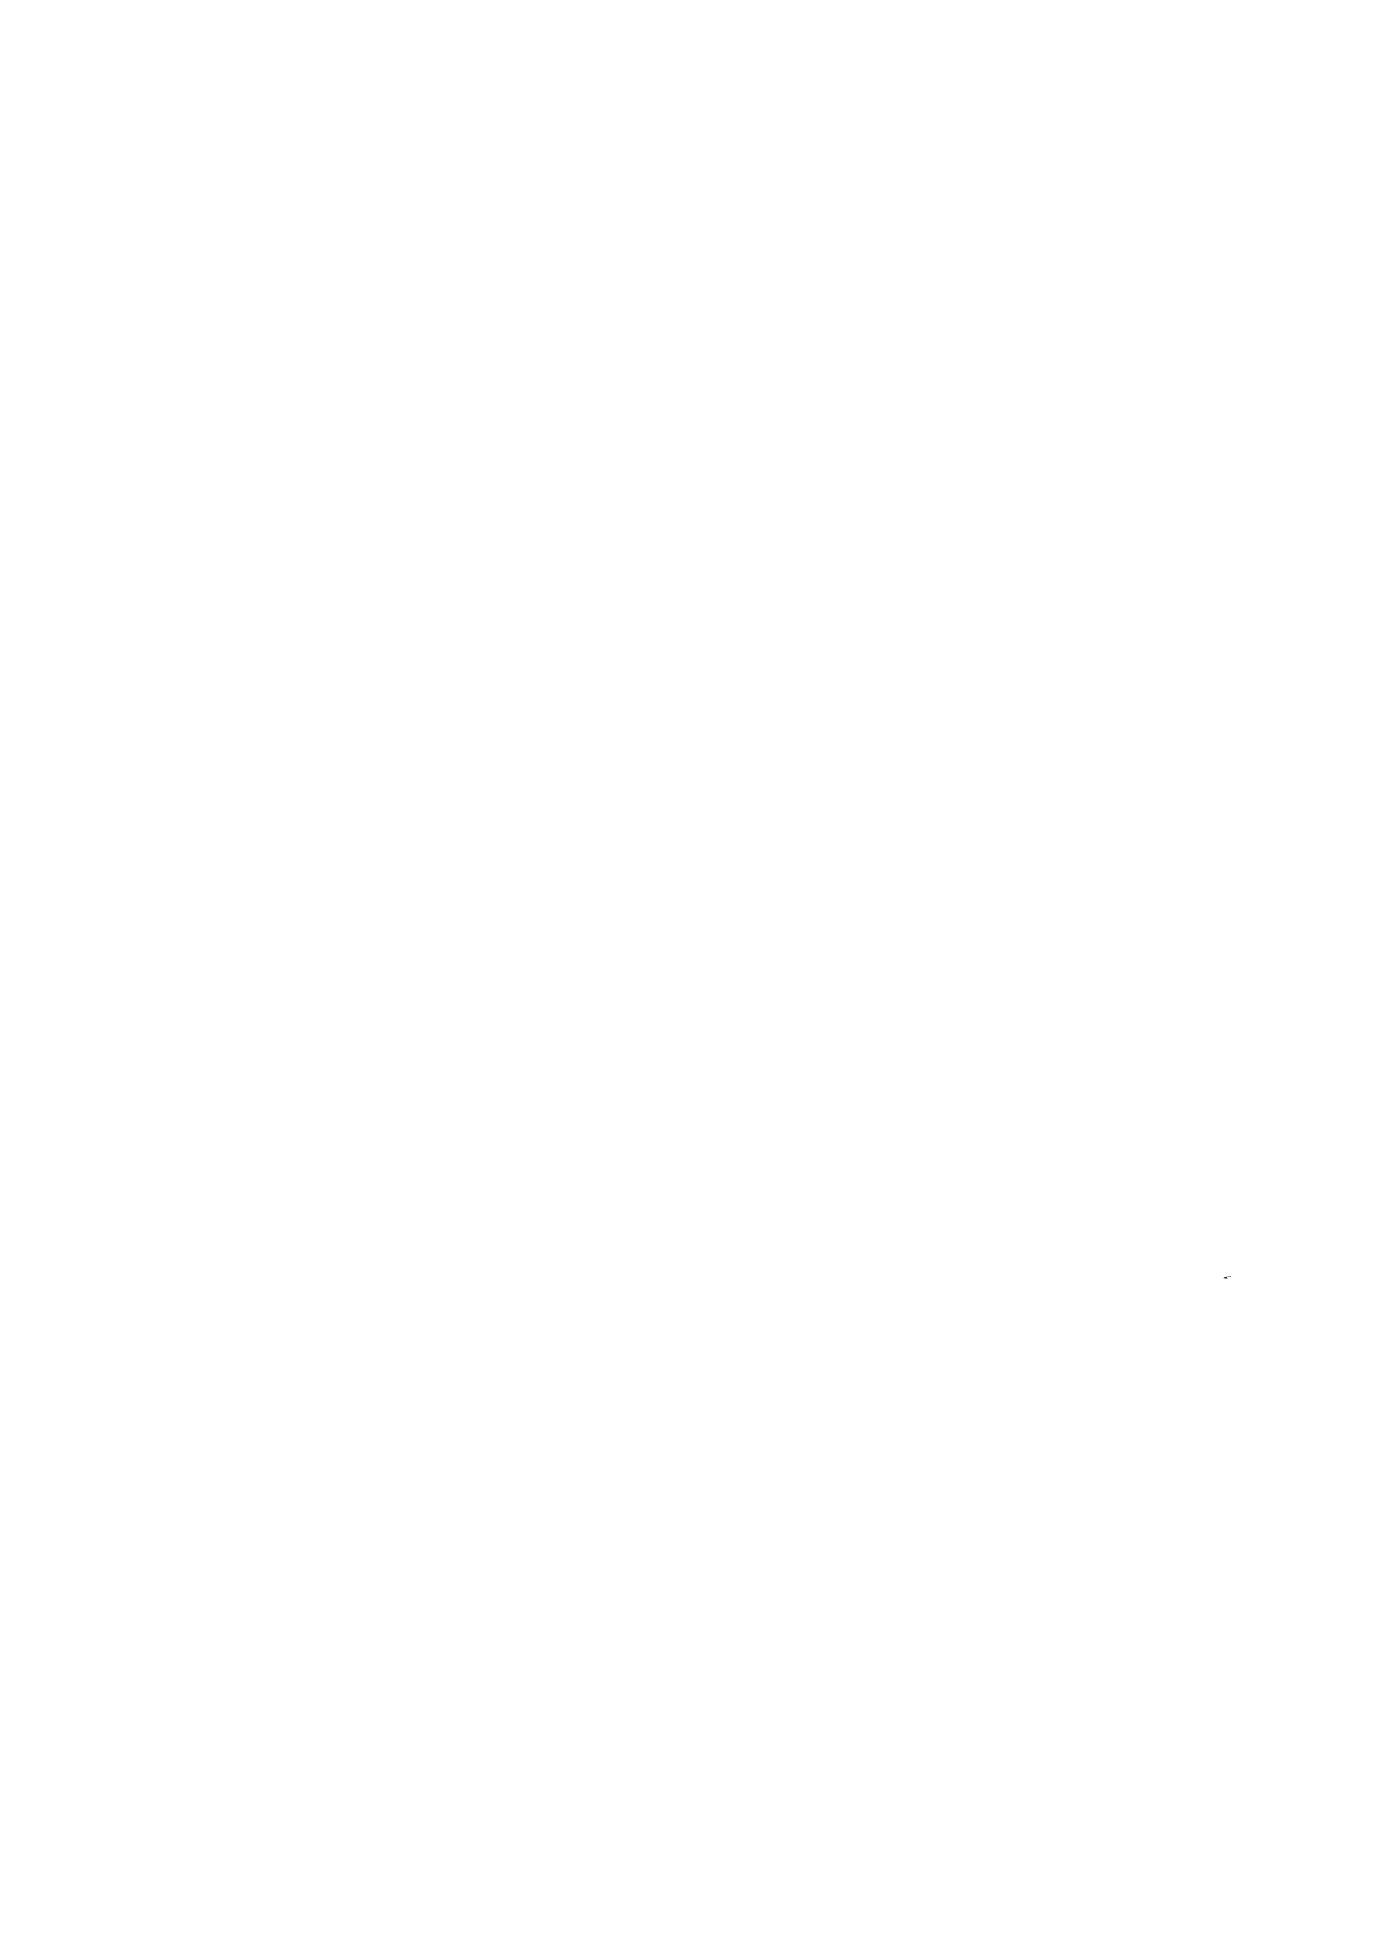 Manuel Bellone Logo Biuanco